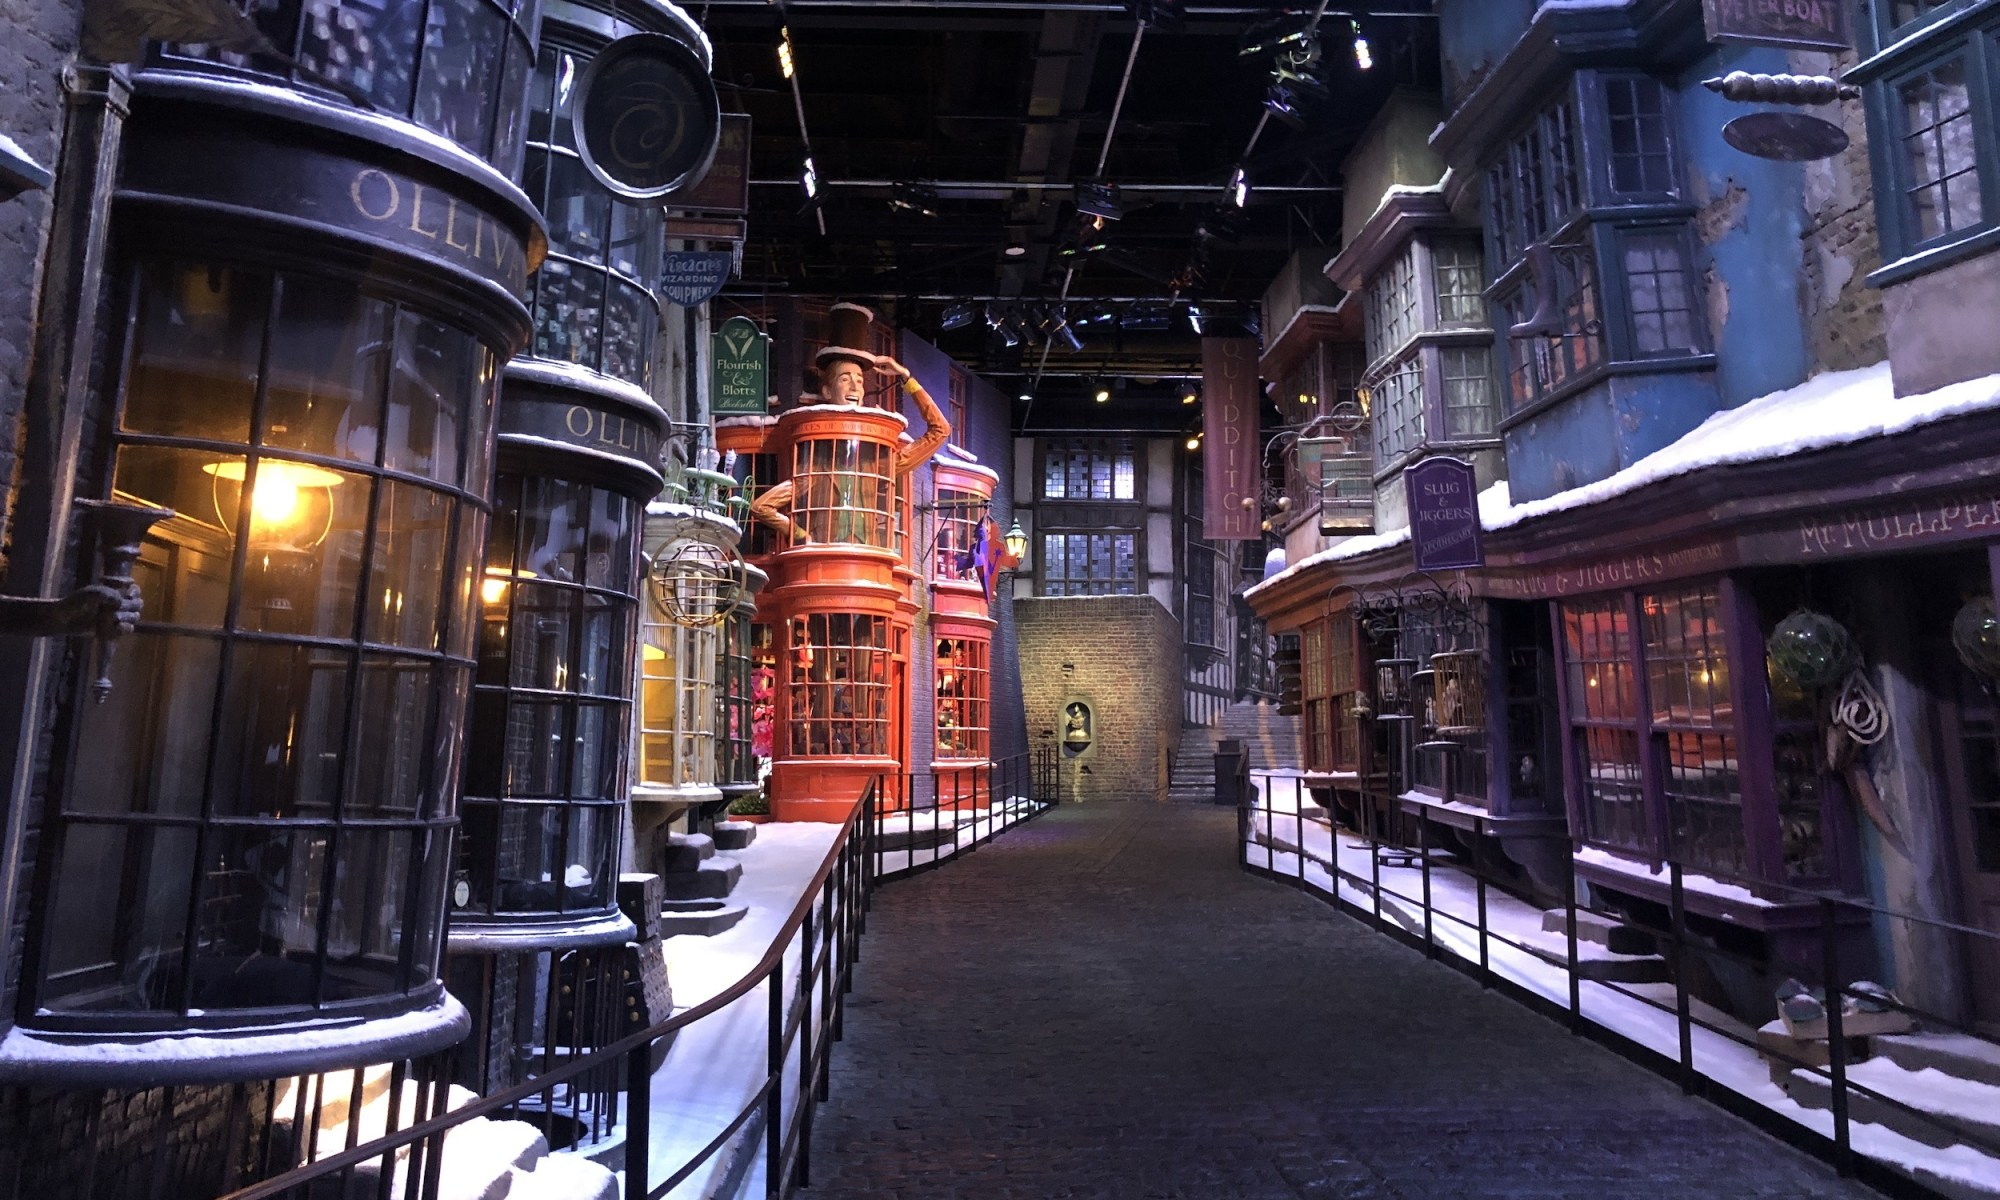 Diagon Alley @ Warner Brothers Studio, London